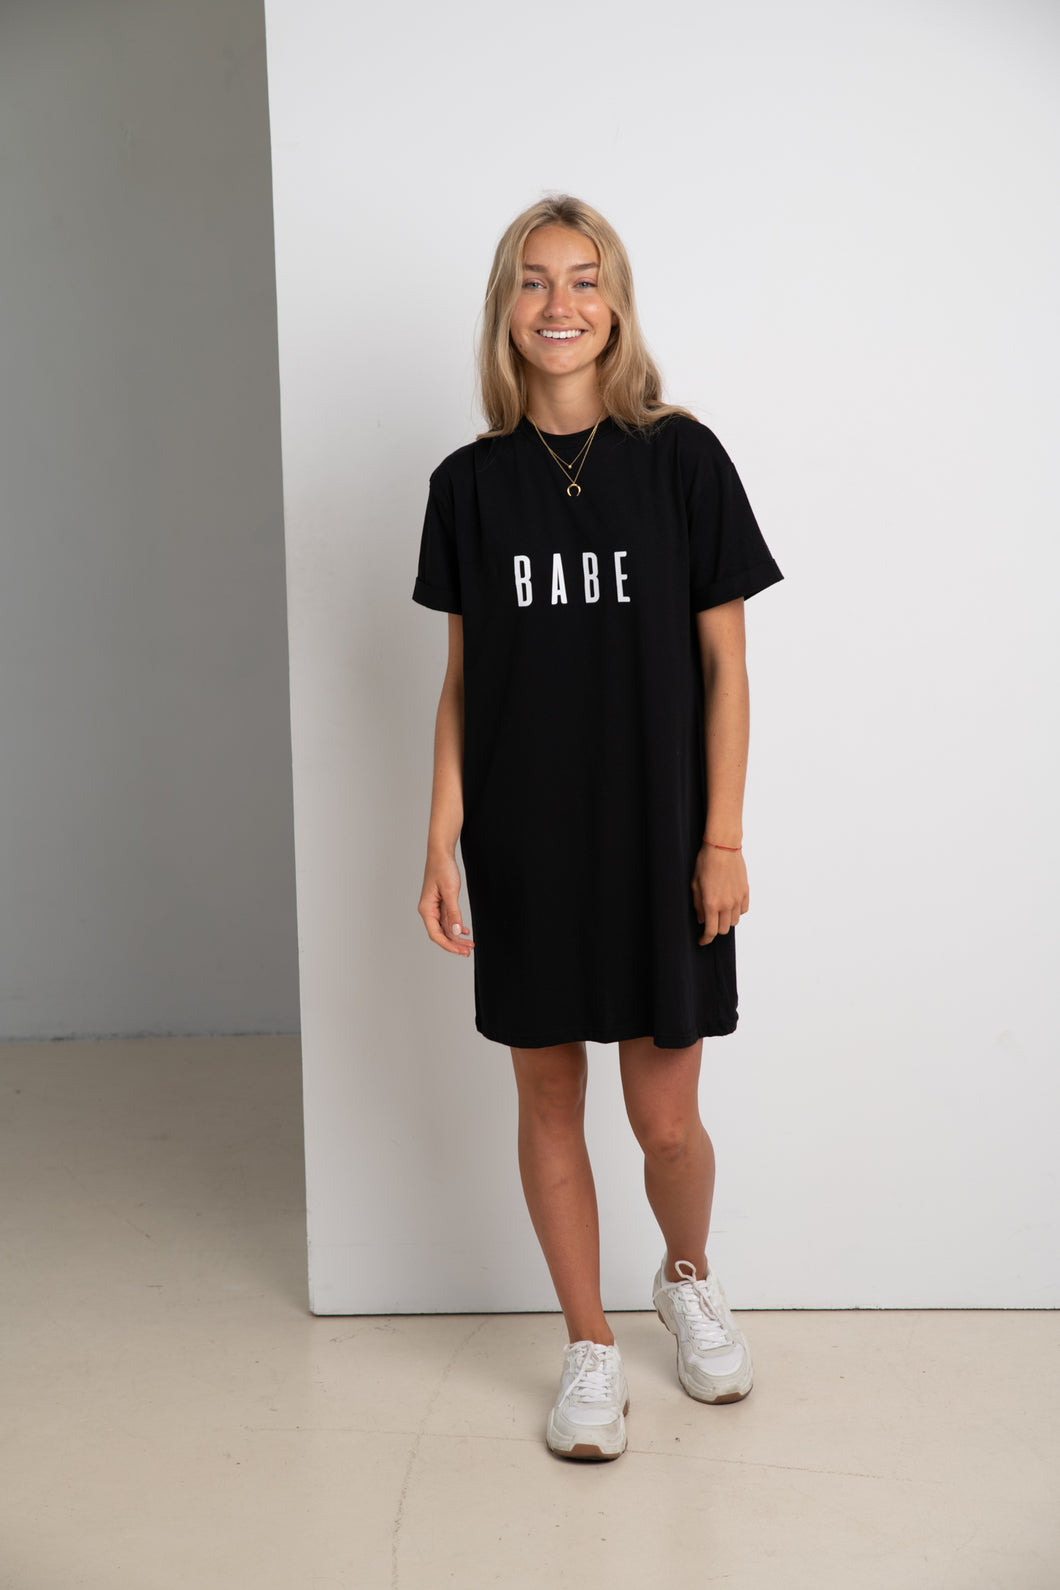 BABE #ECOFRIENDLY dress in black